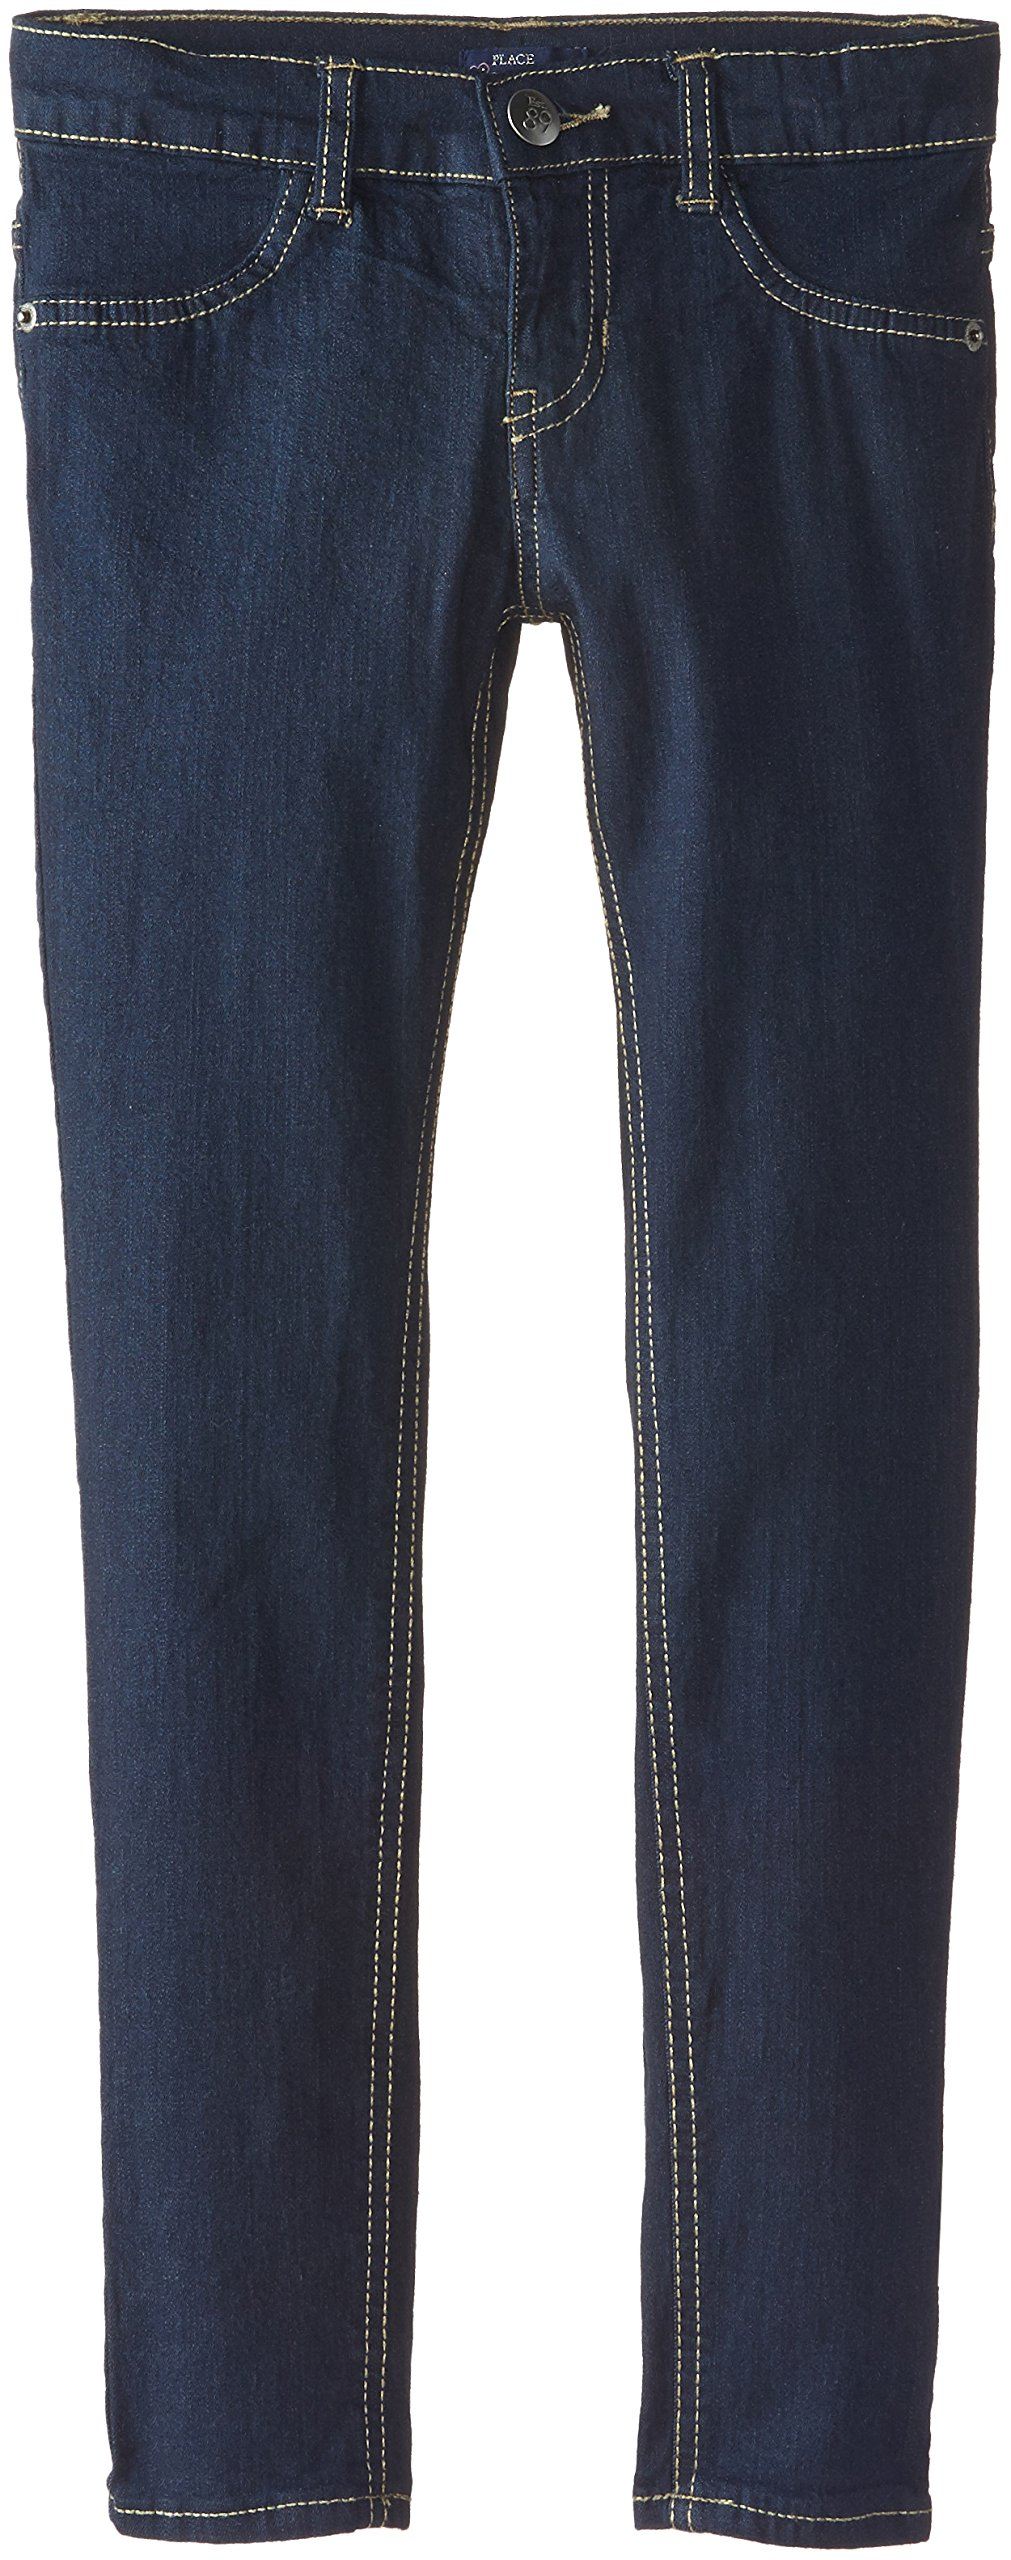 The Children's Place Big Girls' Jeggings, Odyssey 04424, 14